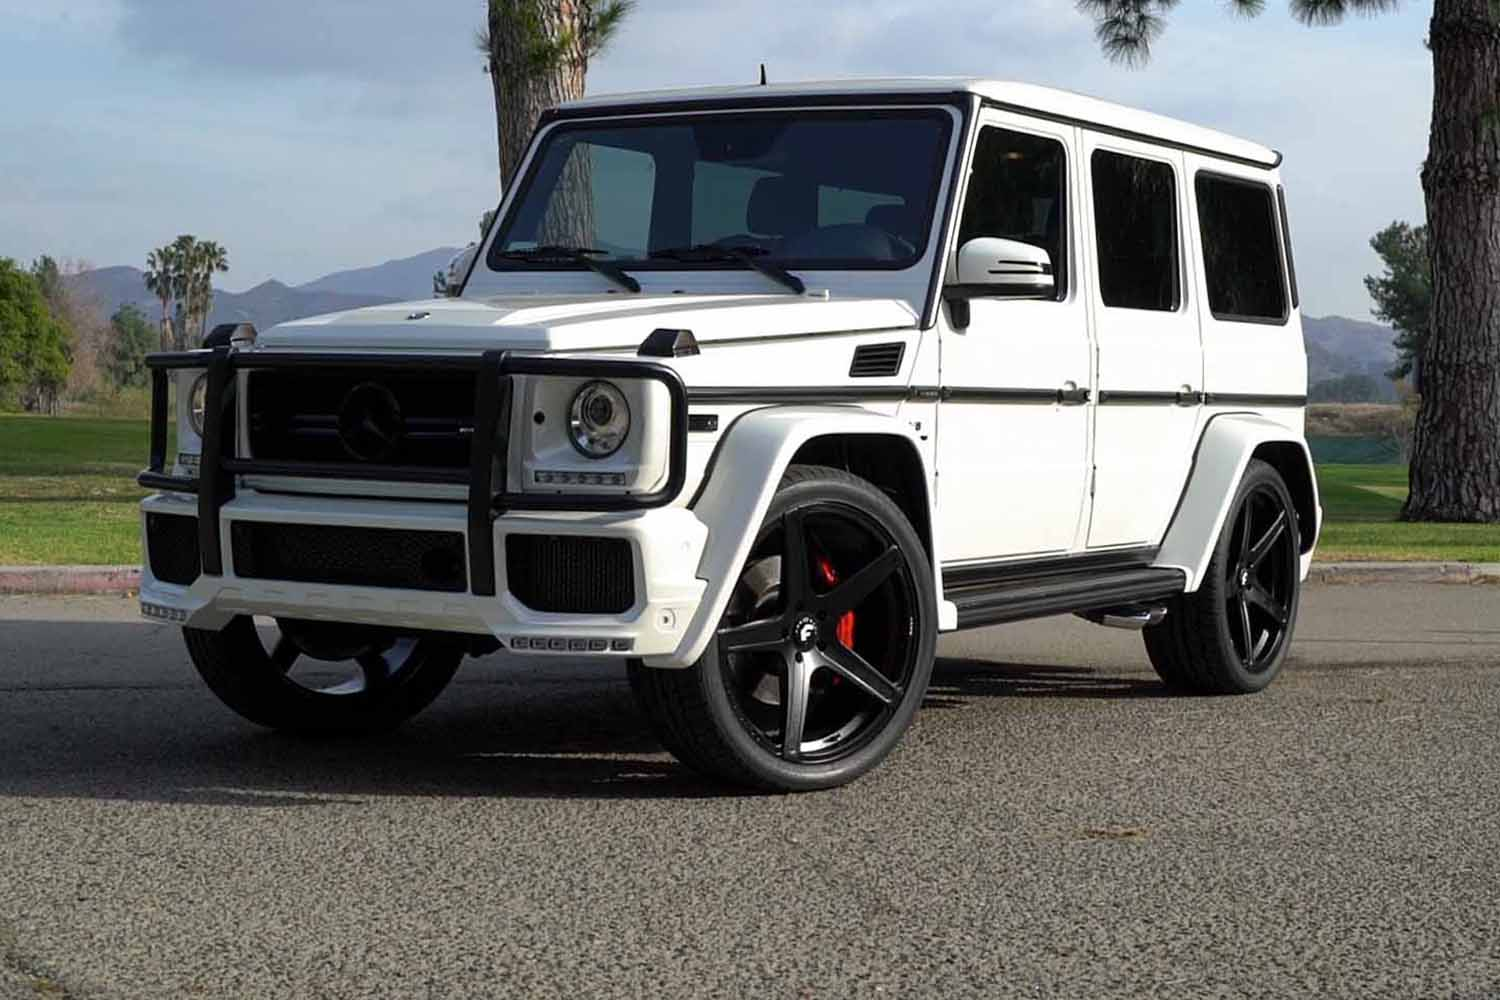 Mercedes Benz G Wagon >> Index of /photos/car-photos/mercedes-benz/g-wagon